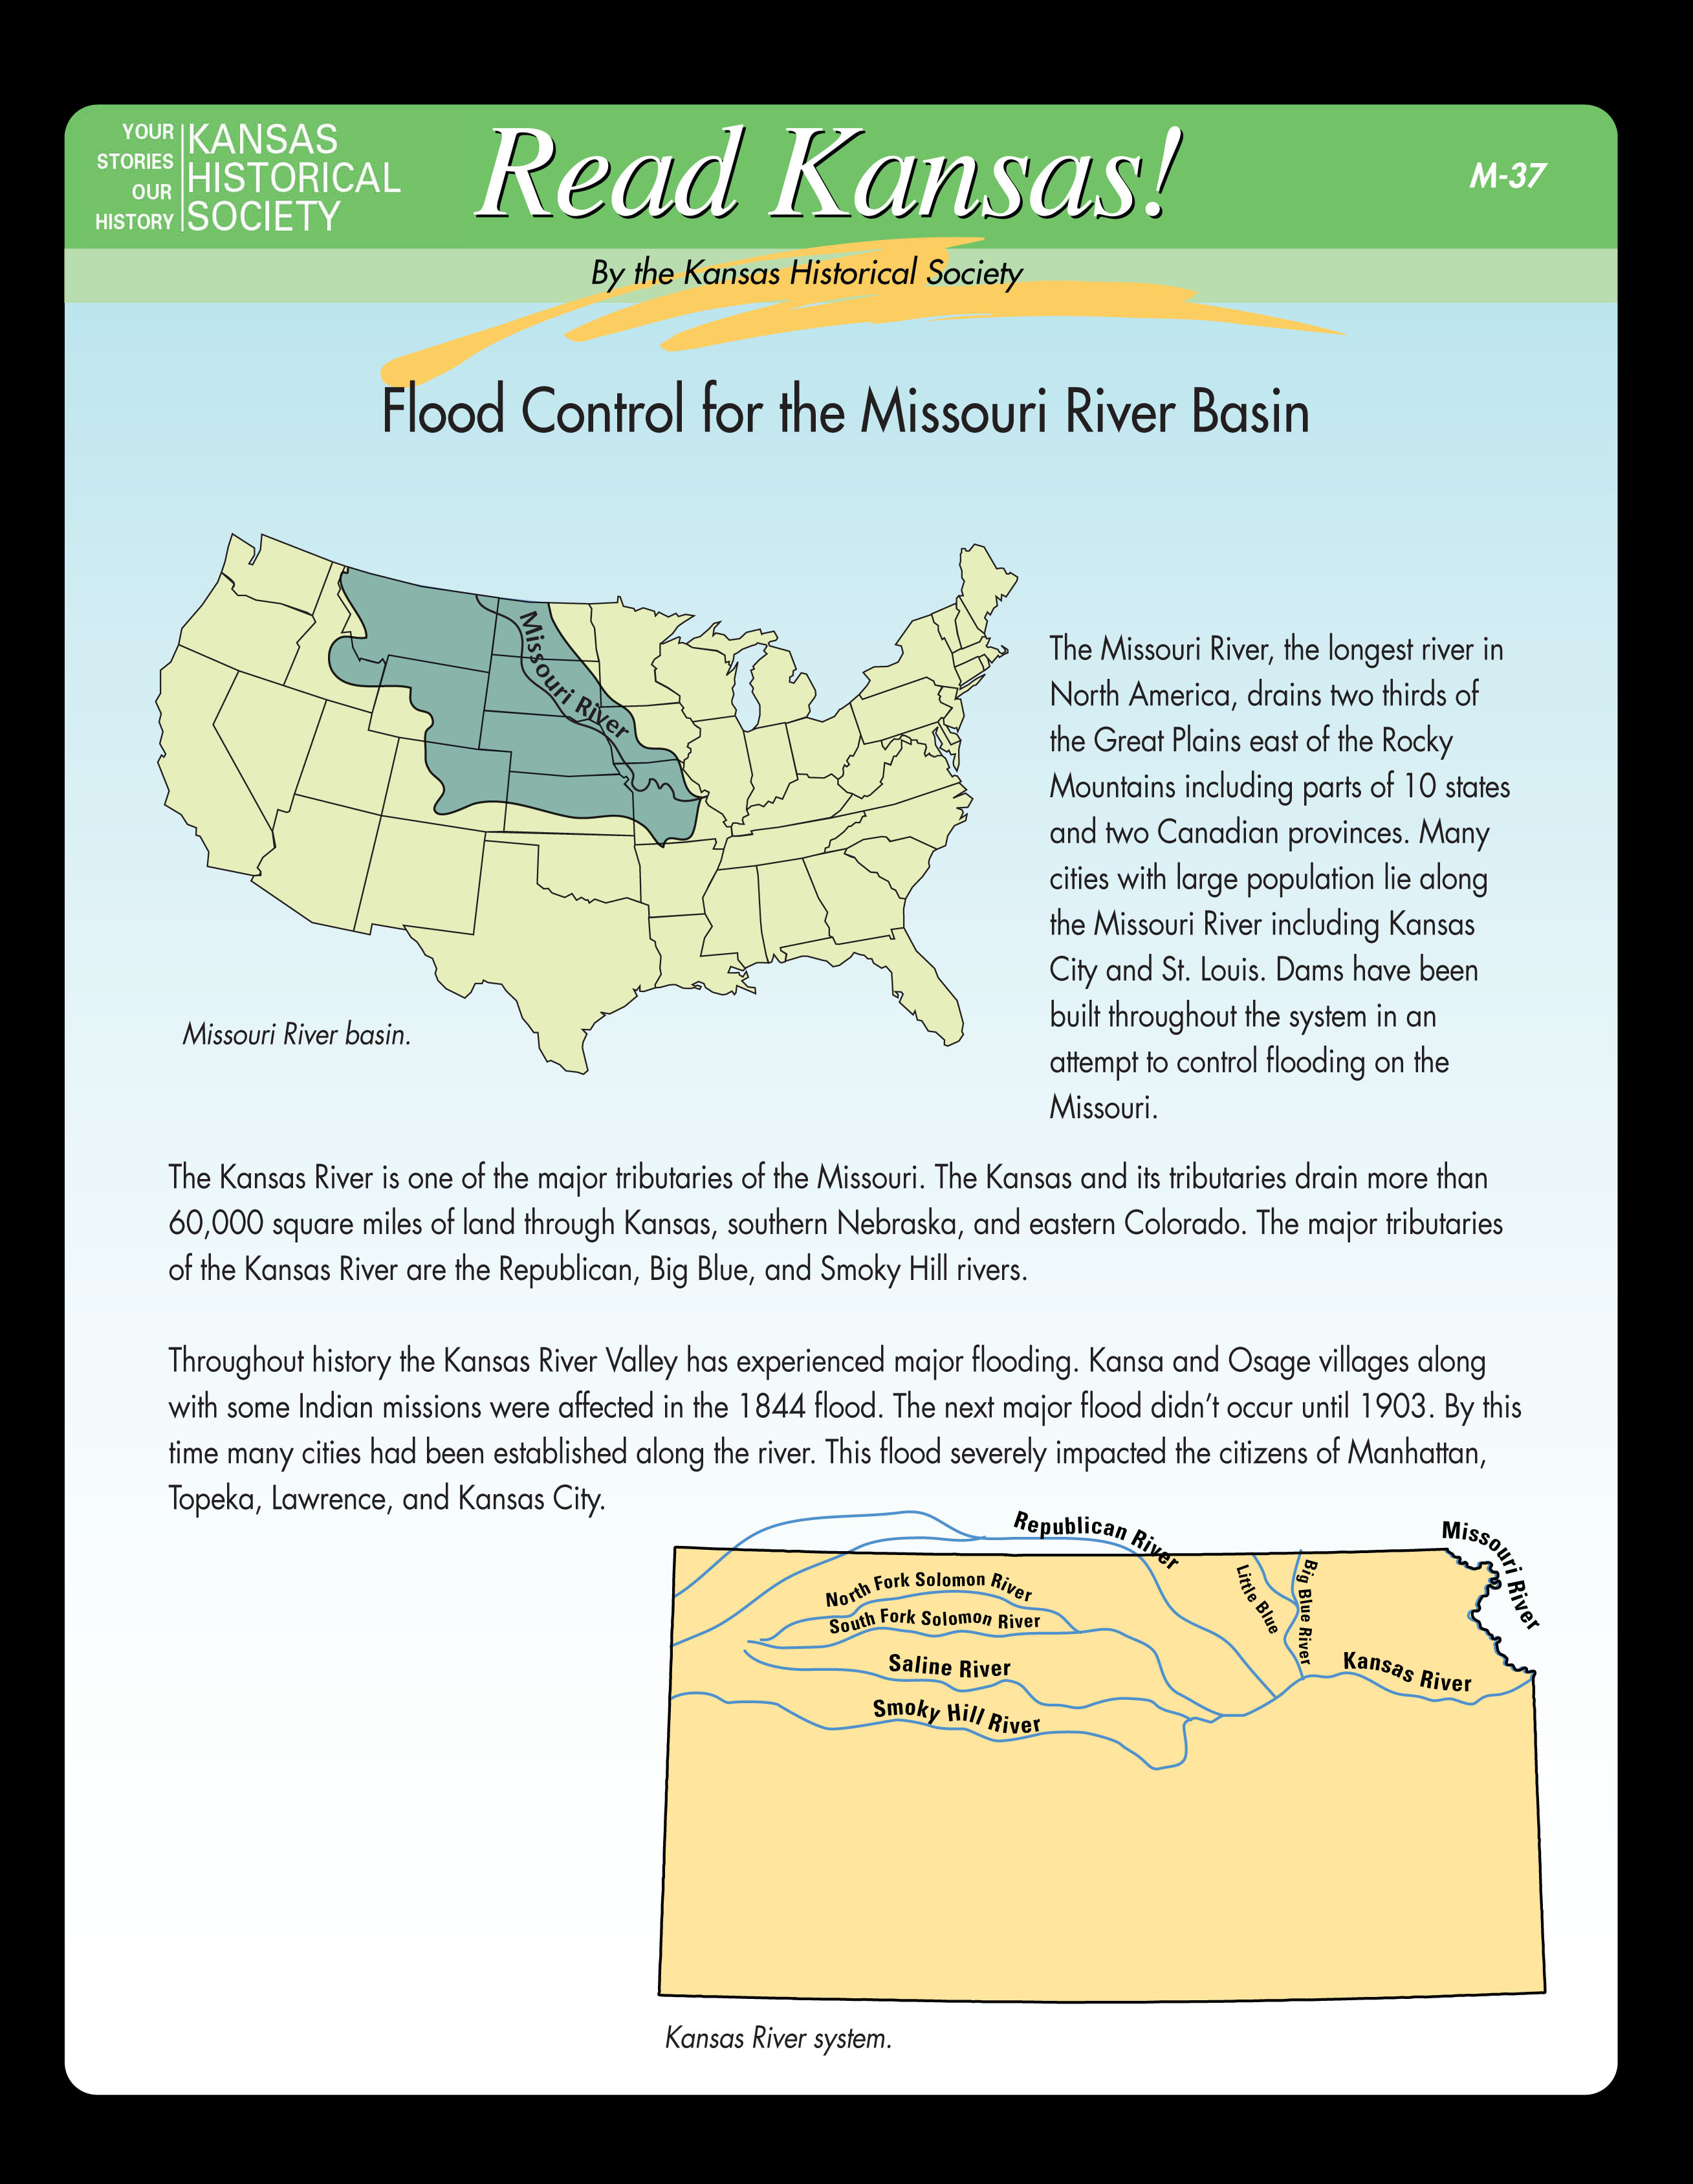 Flood Control for the Missouri River Basin